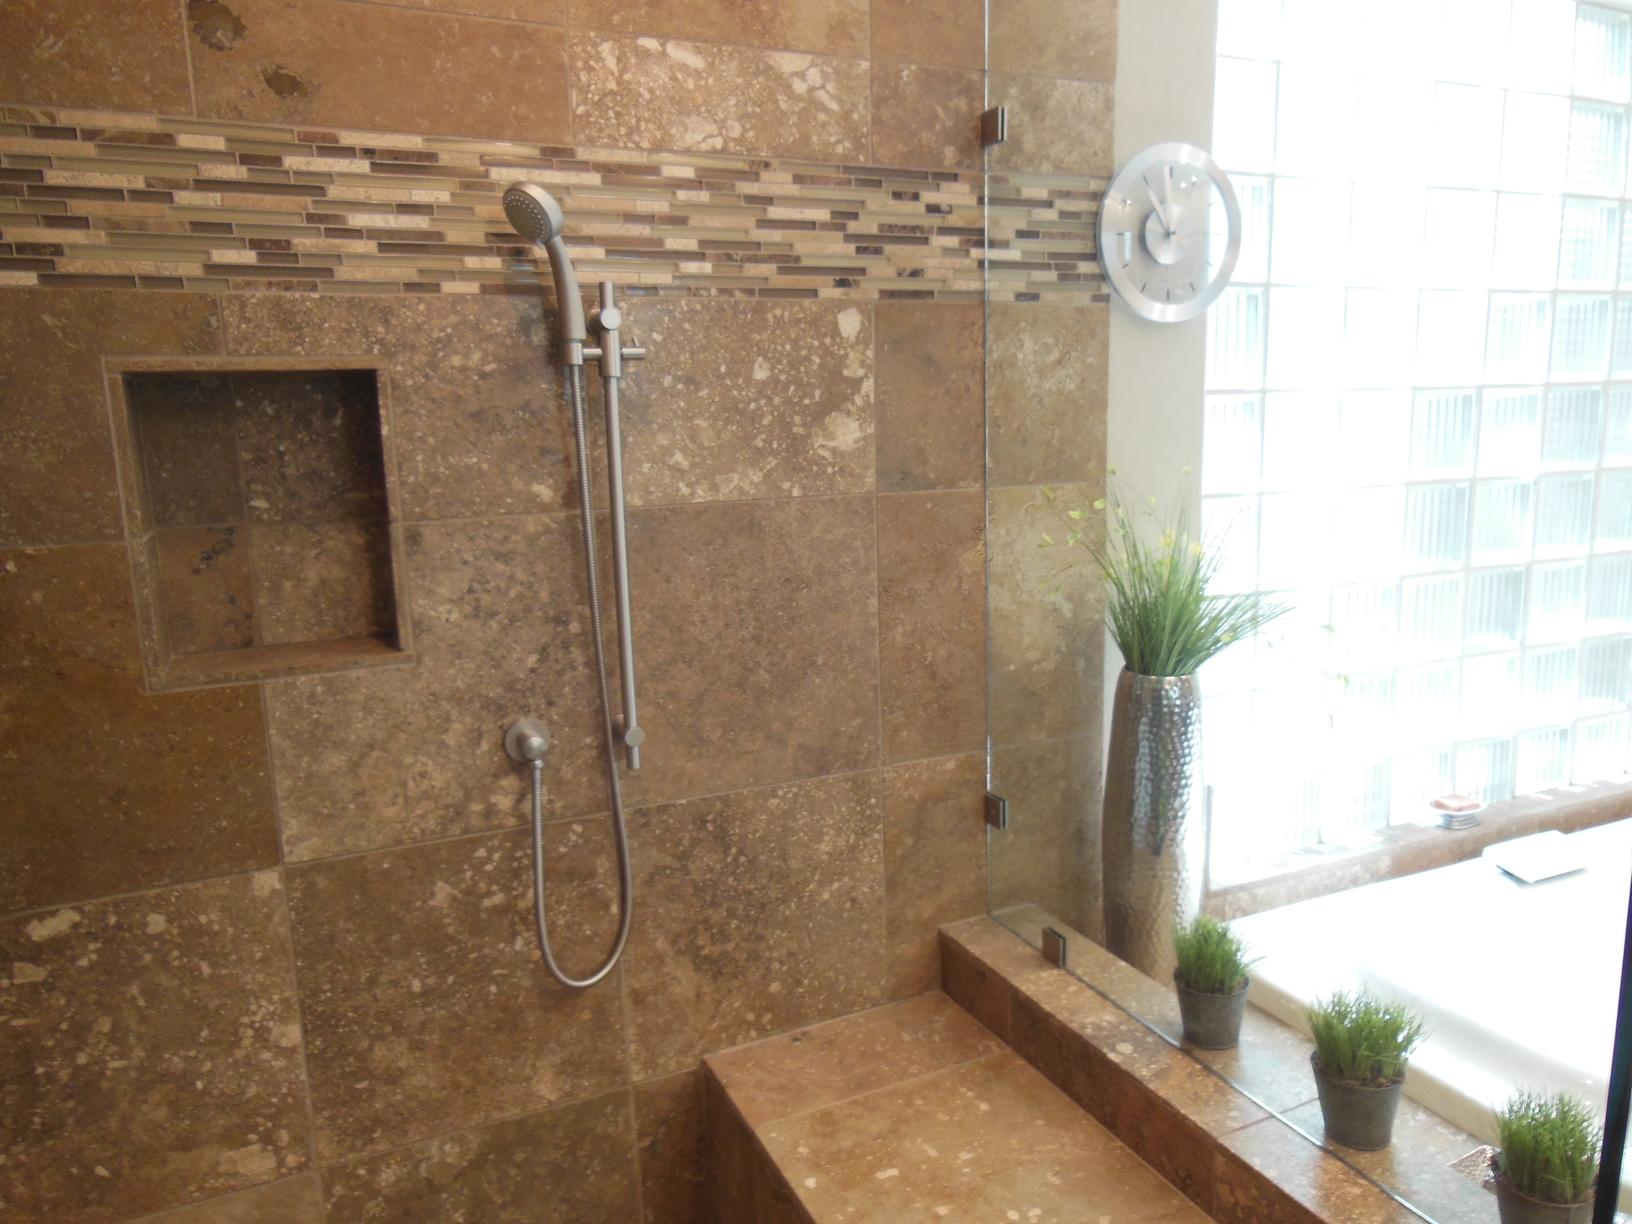 Bathroom Remodel in Scottsdale, AZ - Bathroom Remodel in ...